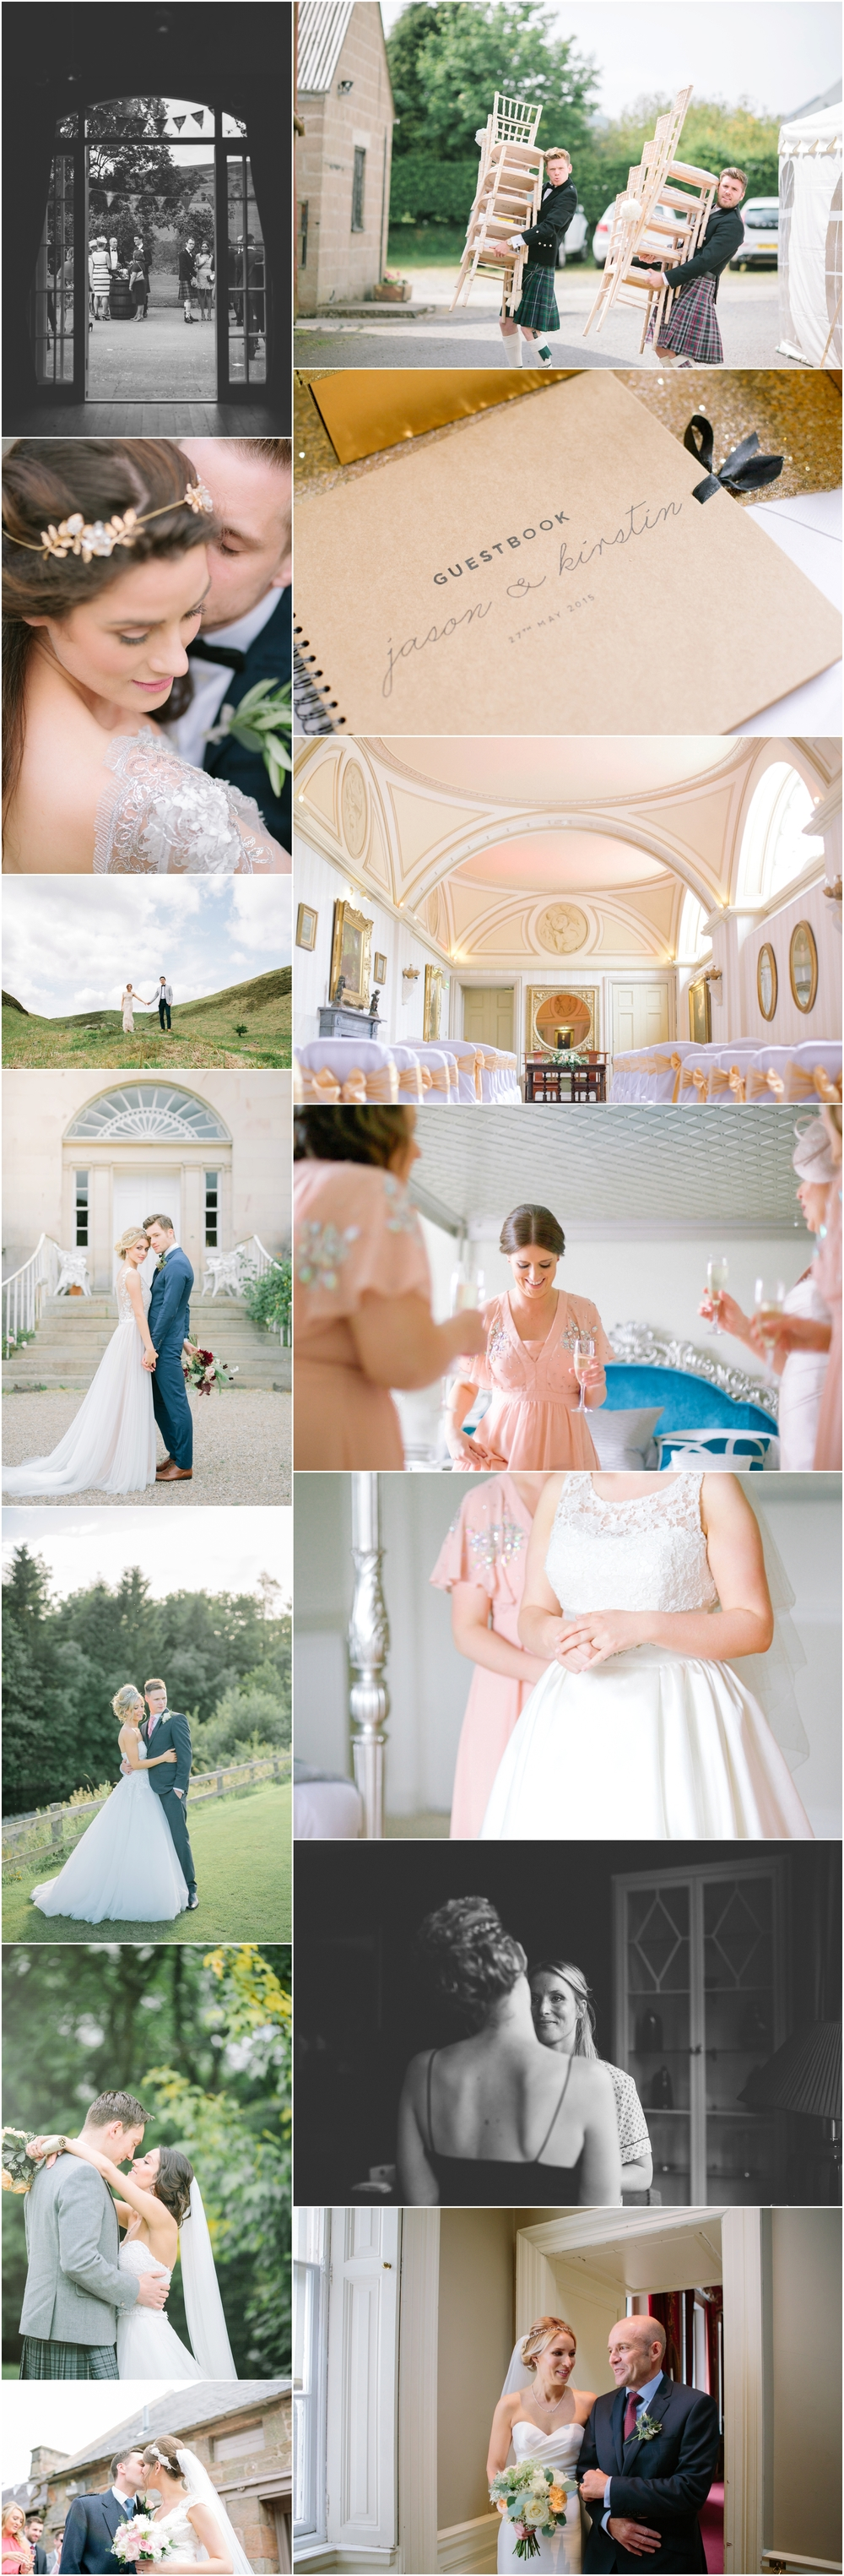 suzanne_li_photography_scottishweddings_0010.jpg